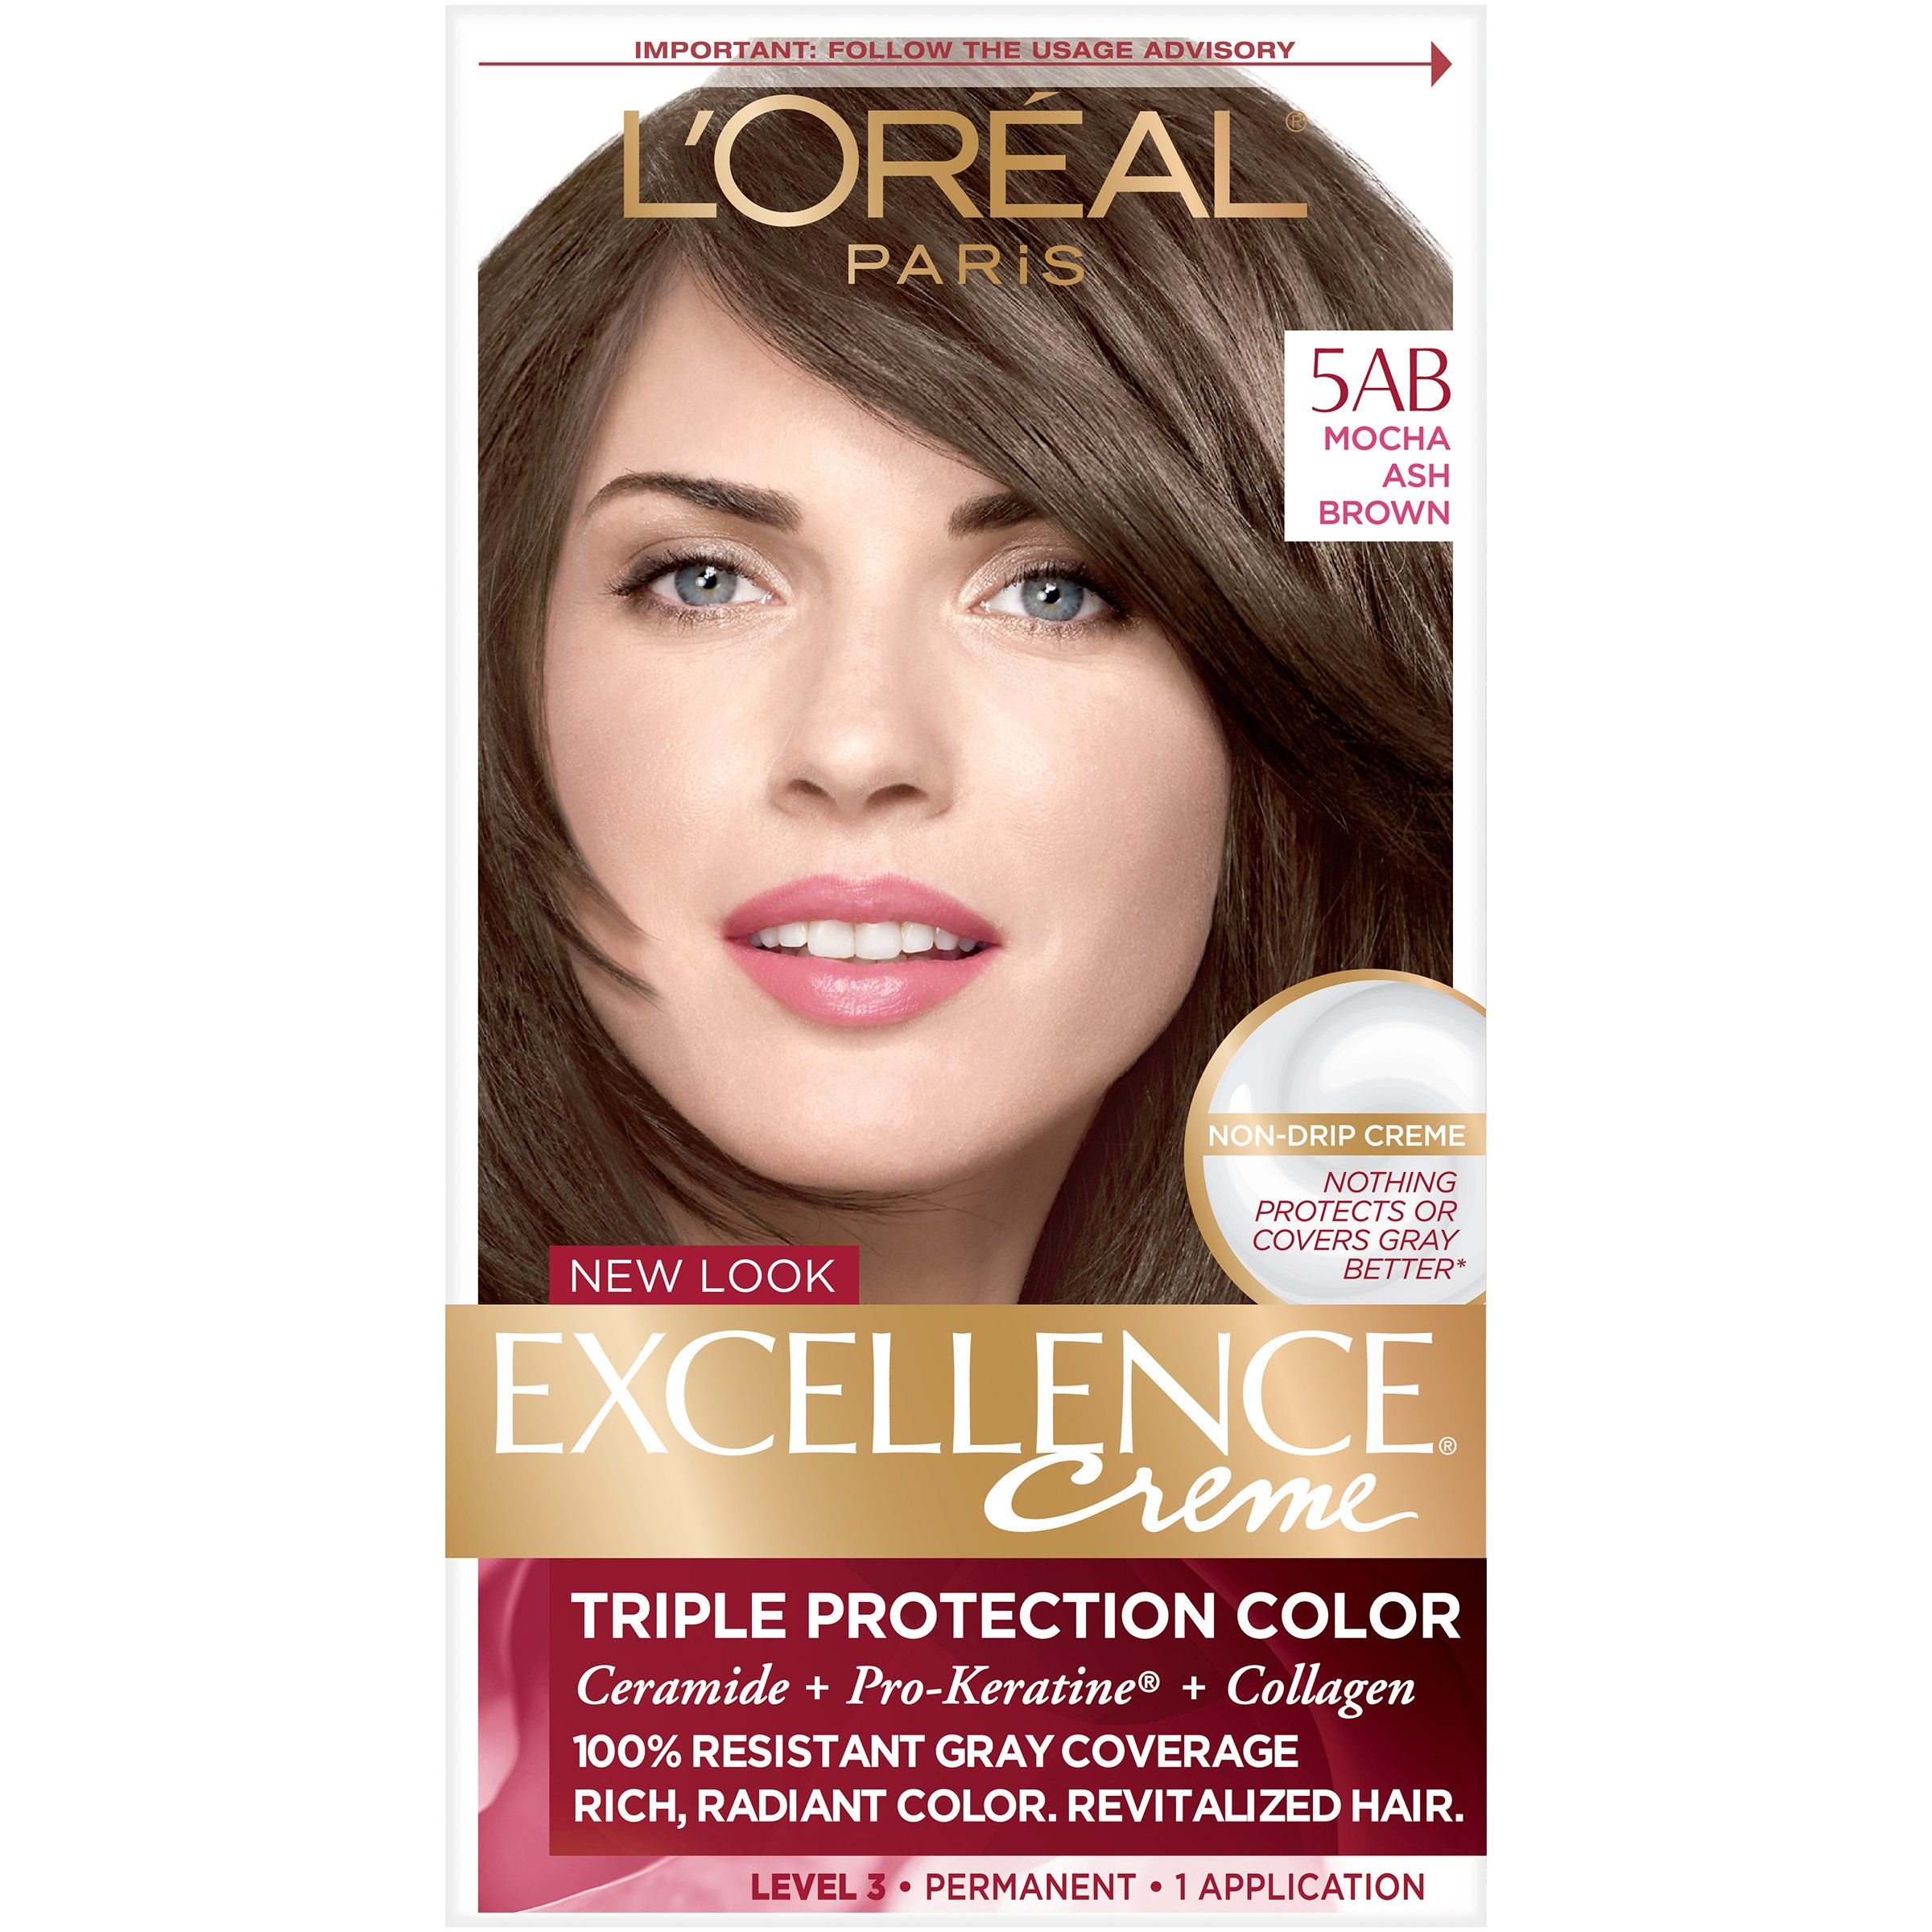 L'Oreal Paris Excellence Creme Permanent Hair Color, 5AB Mocha Ashe Brown, 100 percent Gray Coverage Hair Dye, Pack of 1